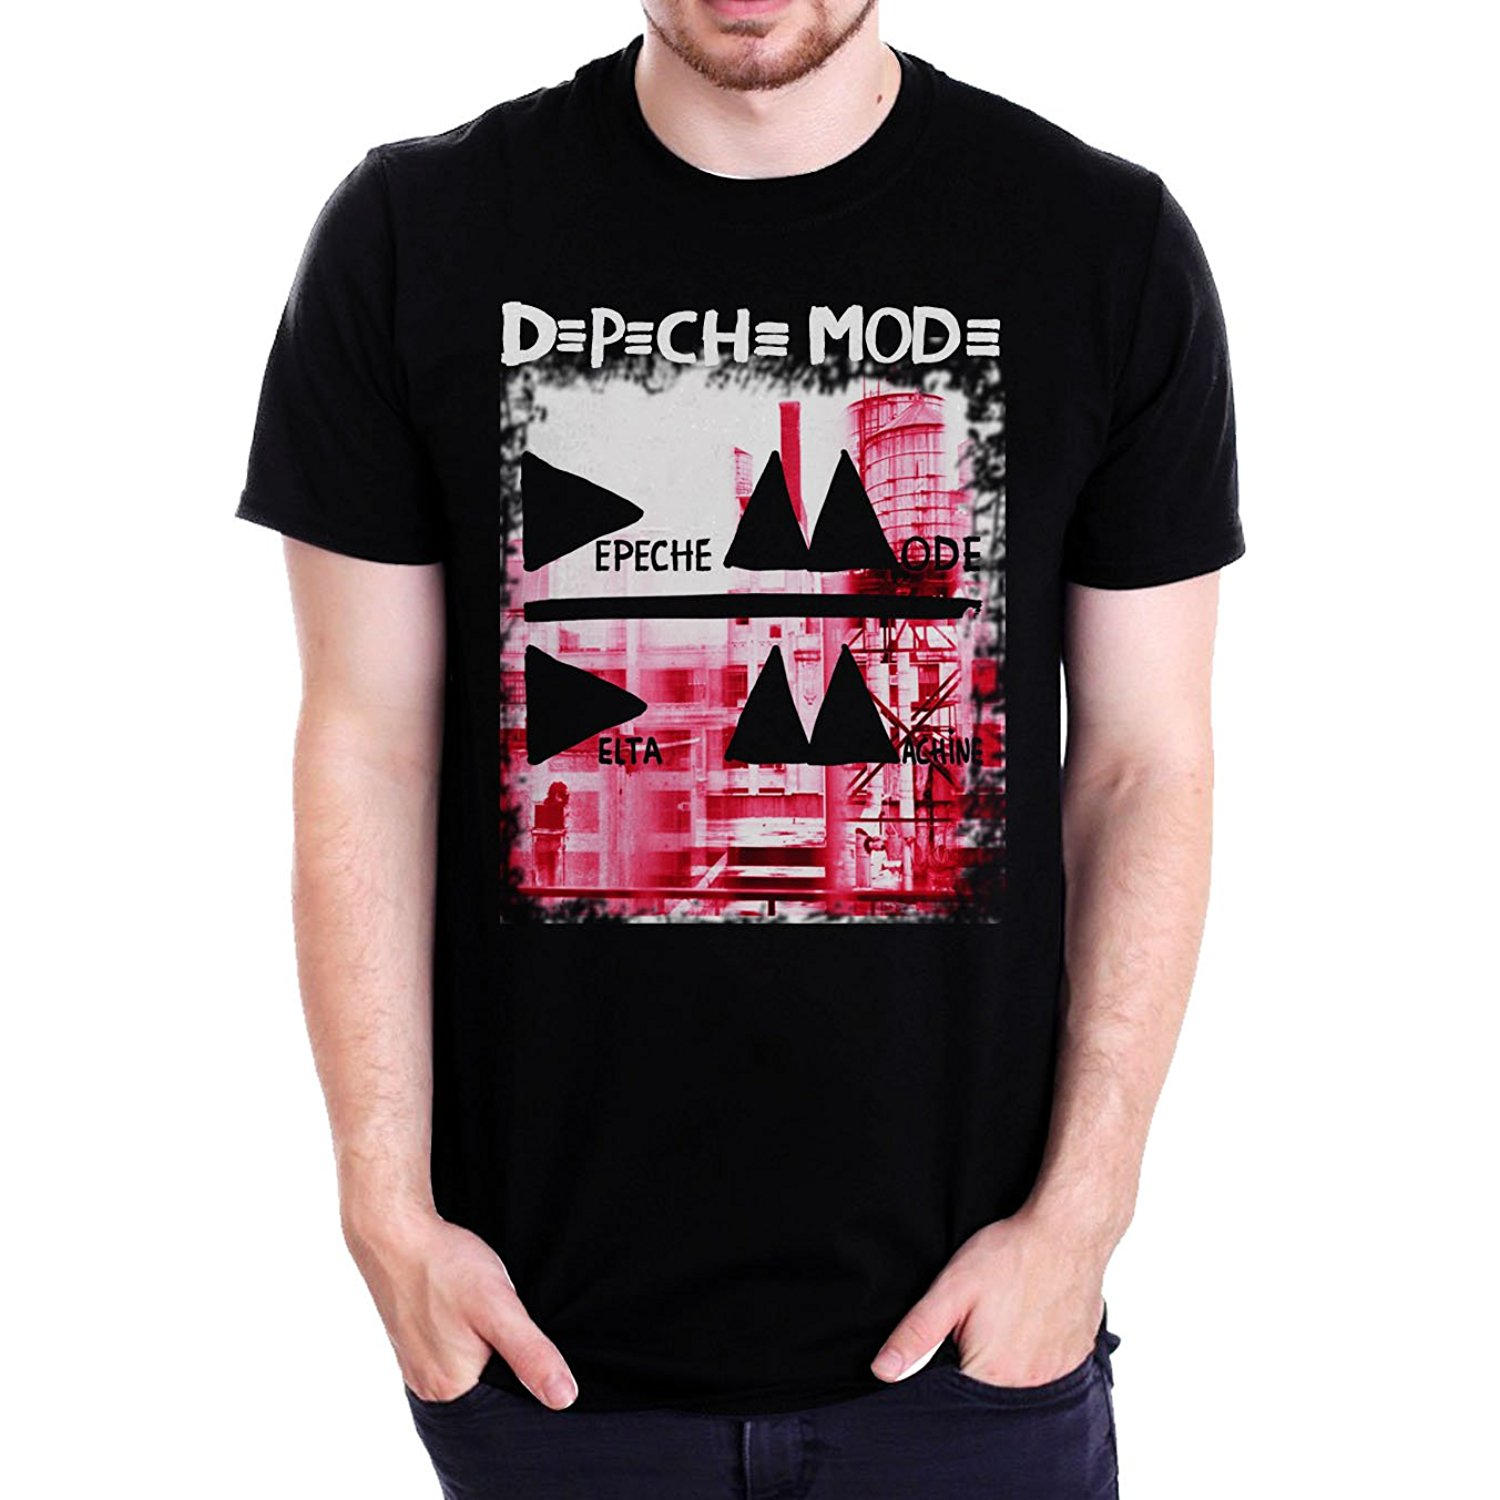 New DEPECHE MODE Delta Machine Electronic Band Mens Black T-Shirt Size S To 3XL Male Best Selling T Shirt 100% Cotton